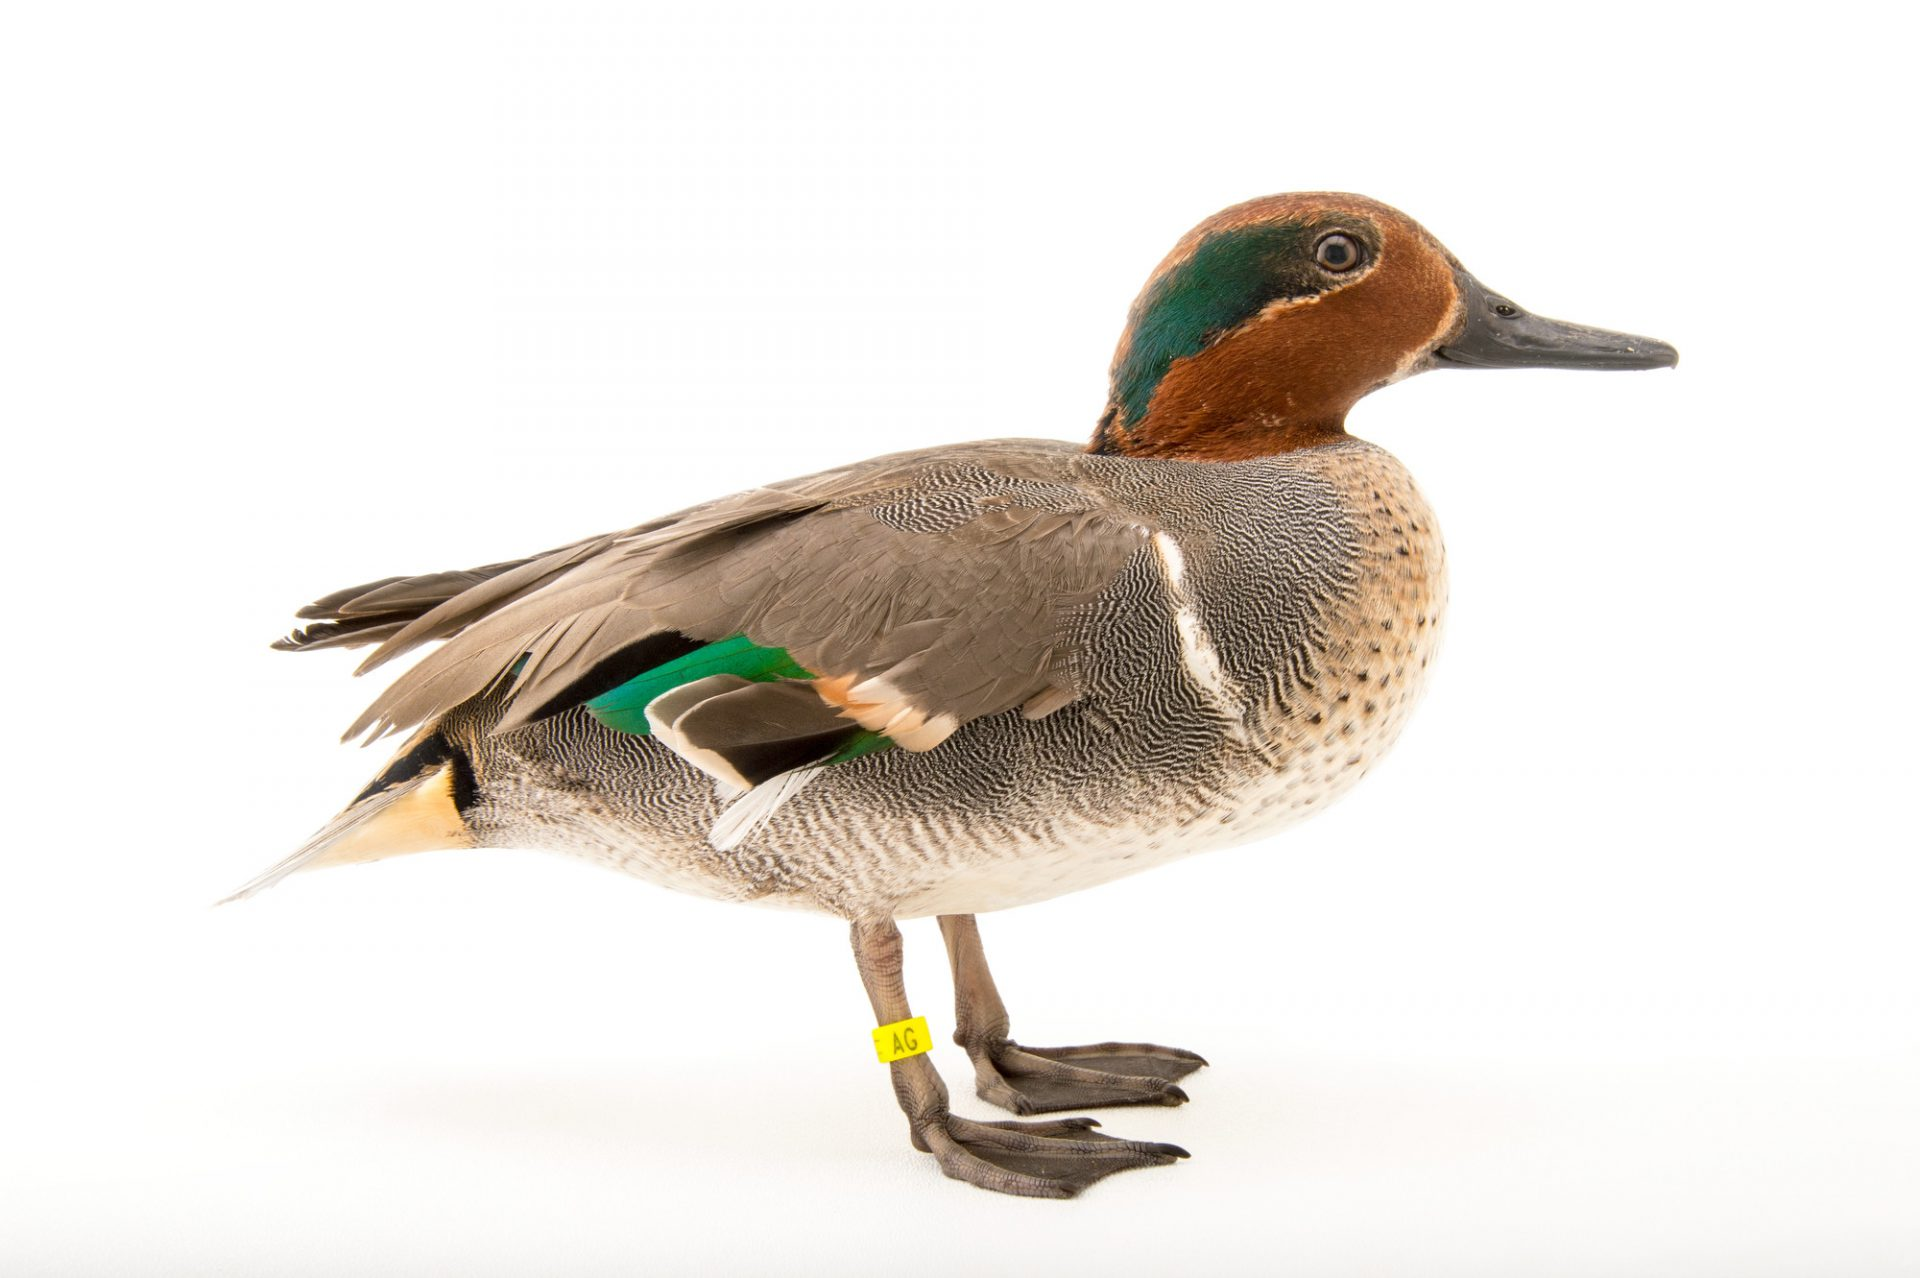 Picture of a green-winged teal (Anas crecca carolinensis) at the Sylvan Heights Bird Park.